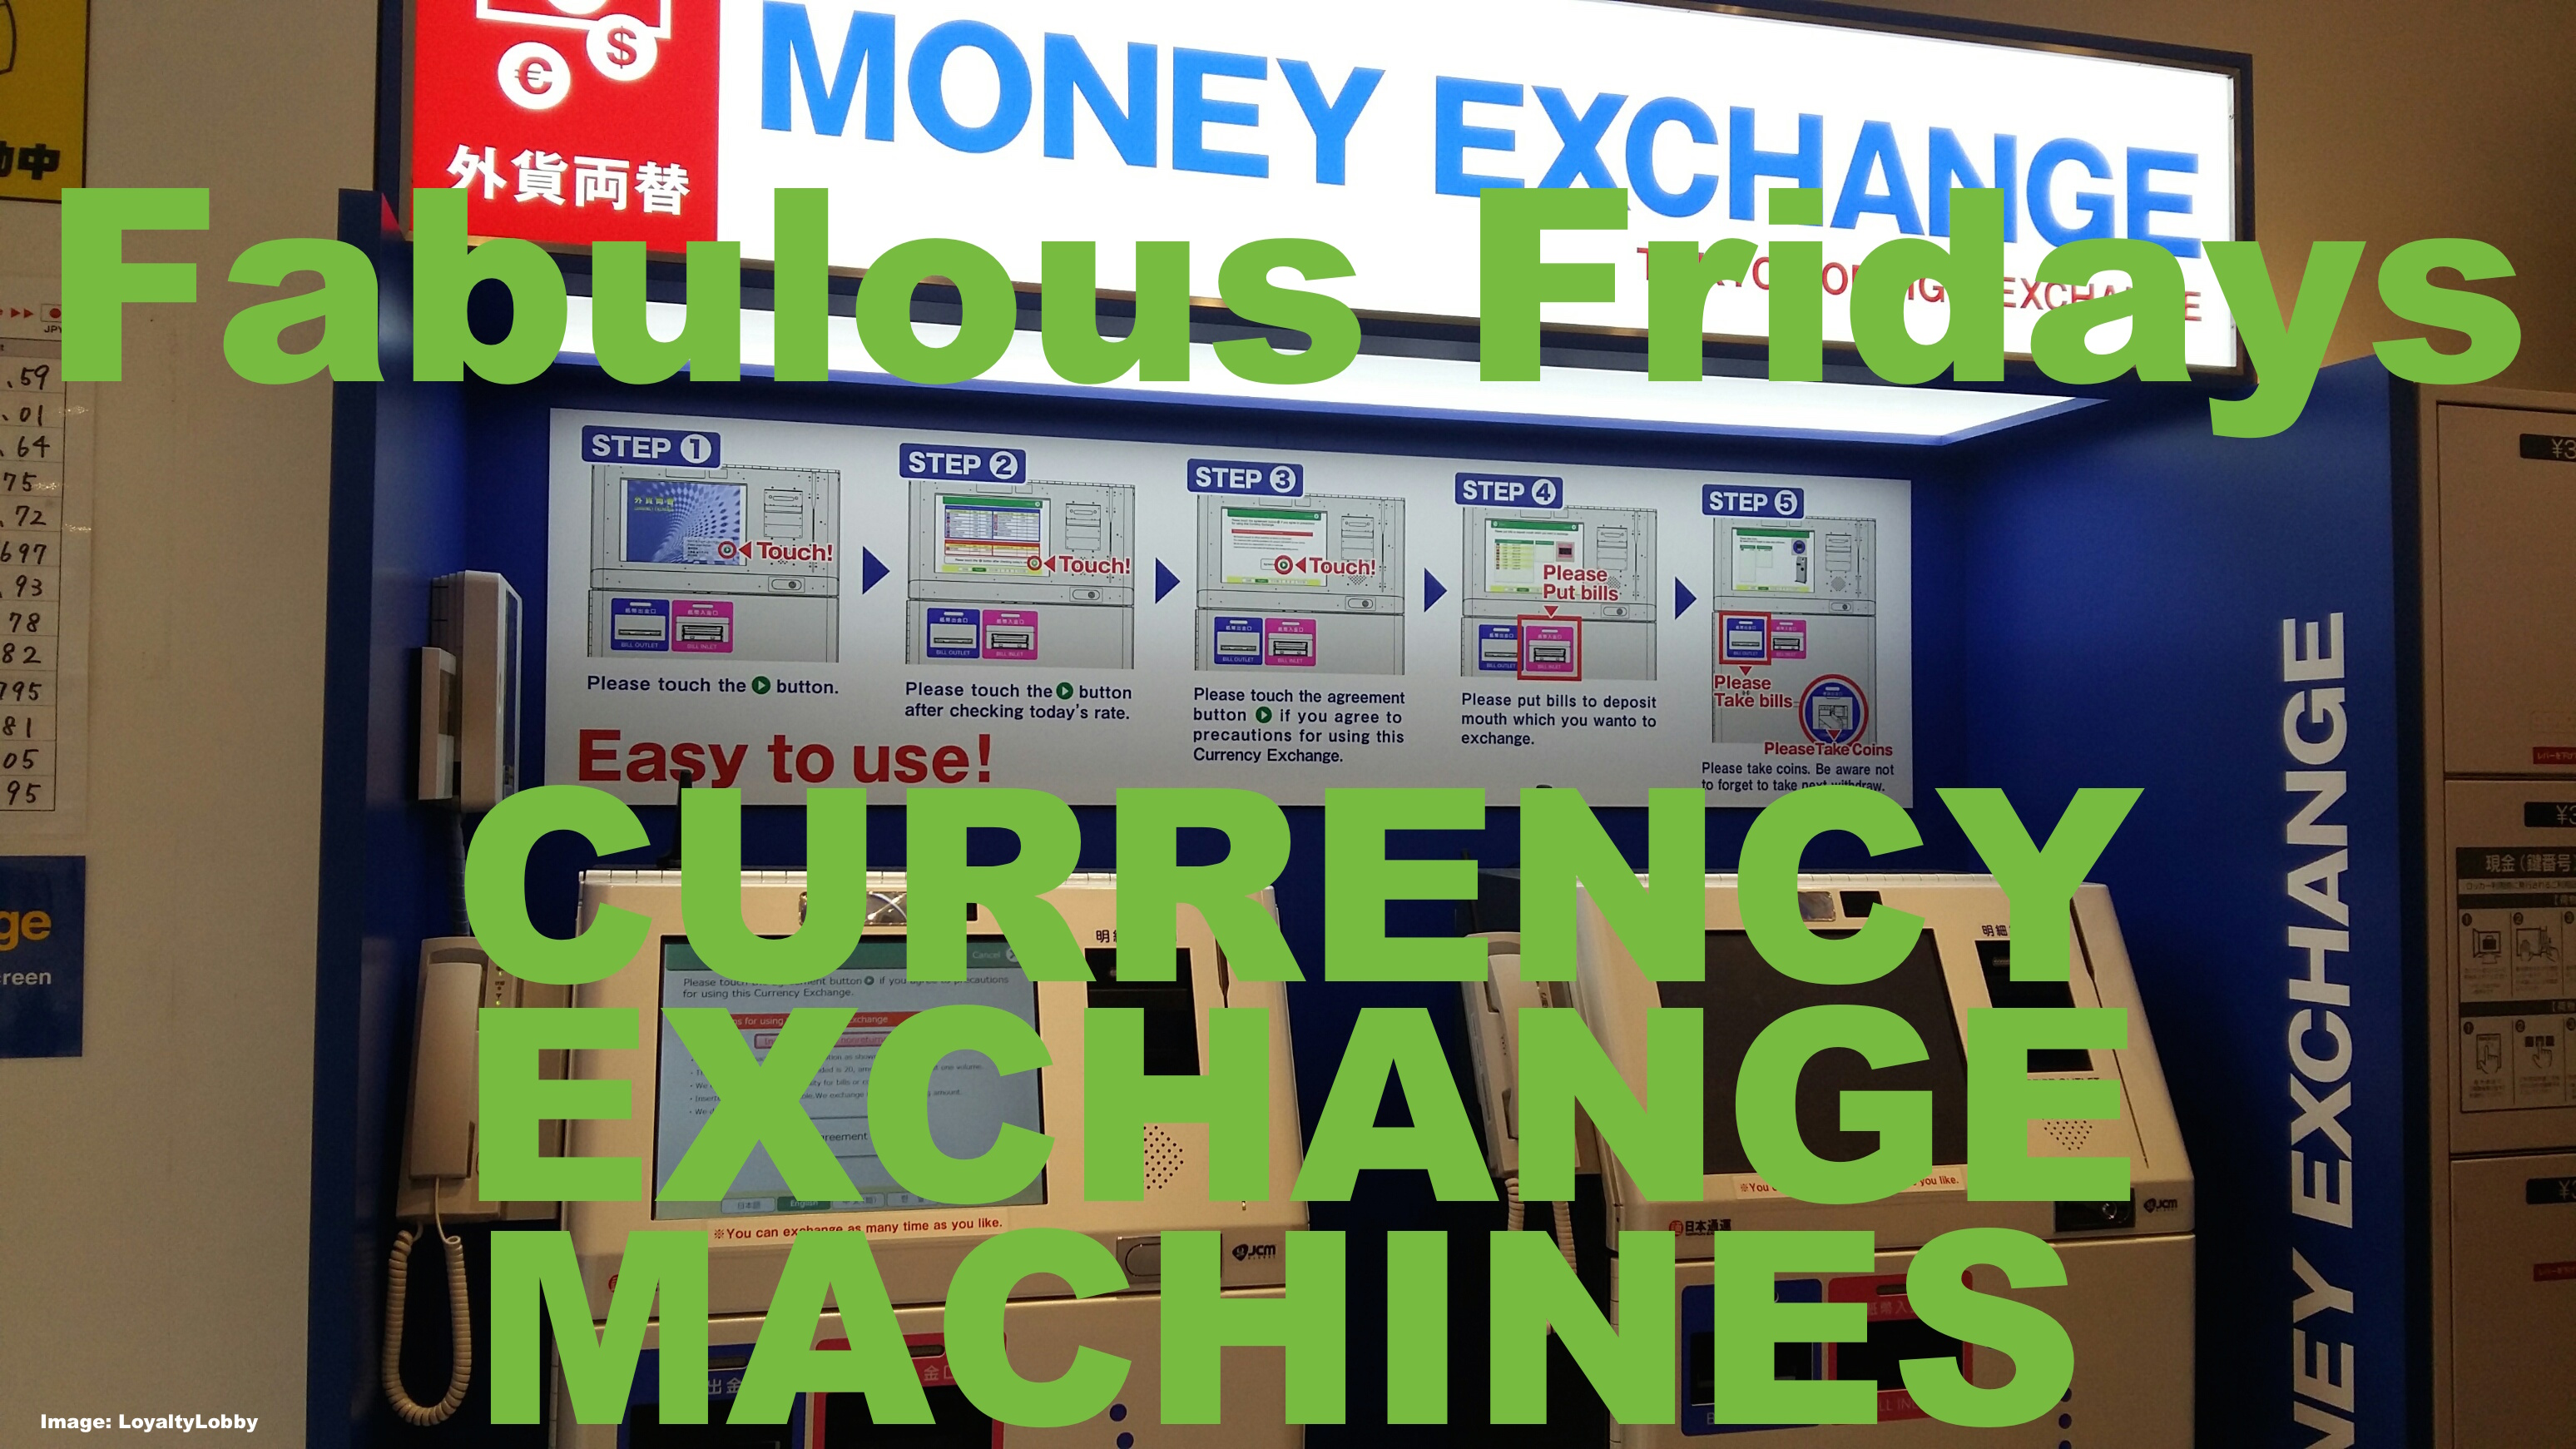 Fabulous Fridays Currency Exchange Machines With Realistic Rates For Small Amounts In Tokyo